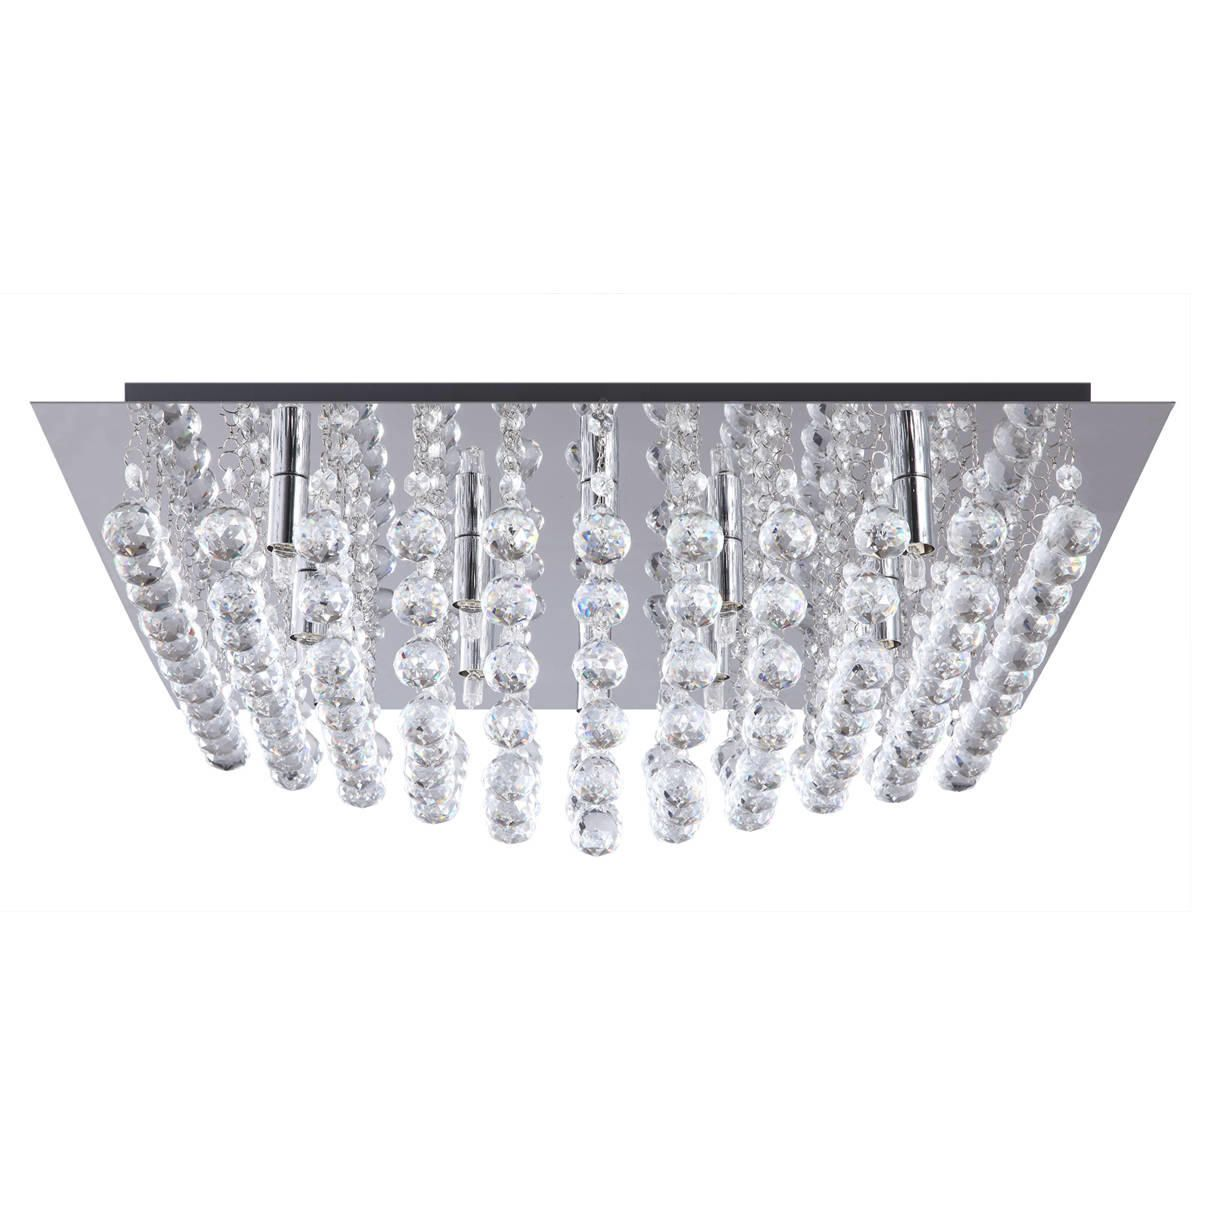 galaxy flush ceiling light k9 crystal chrome from litecraft. Black Bedroom Furniture Sets. Home Design Ideas